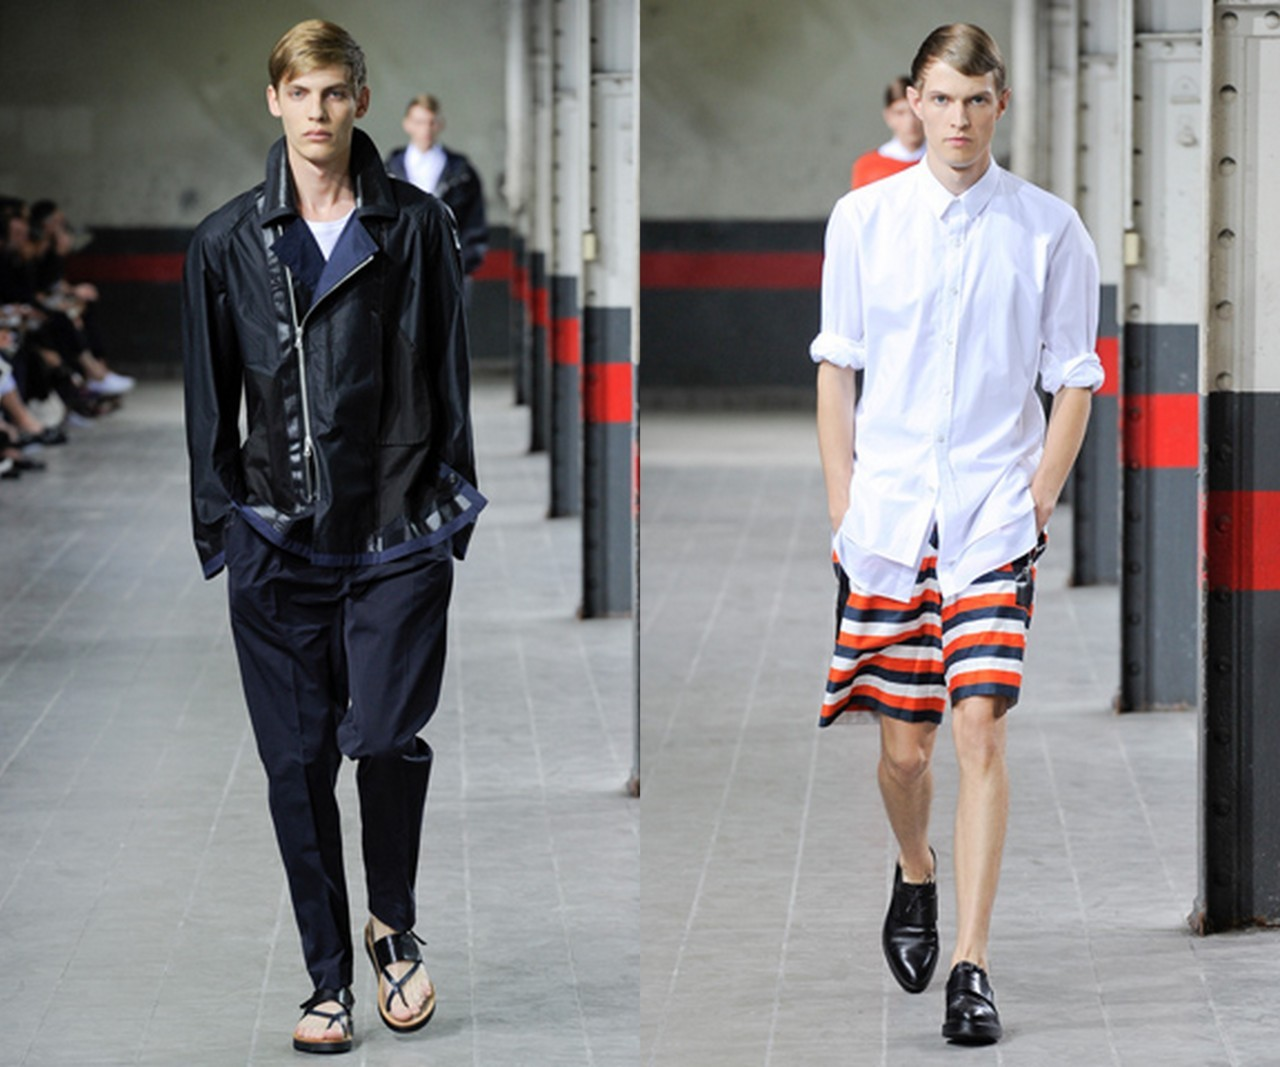 Dries Van Noten Menswear Spring 2012 One of the best menswear collection this year. I mean…so good. More than good. Genius.The form, the look, the taste, the refinement, the challenging ideas, the fabric. Just… There is a deficit of words available to describe this immaculate perfection.